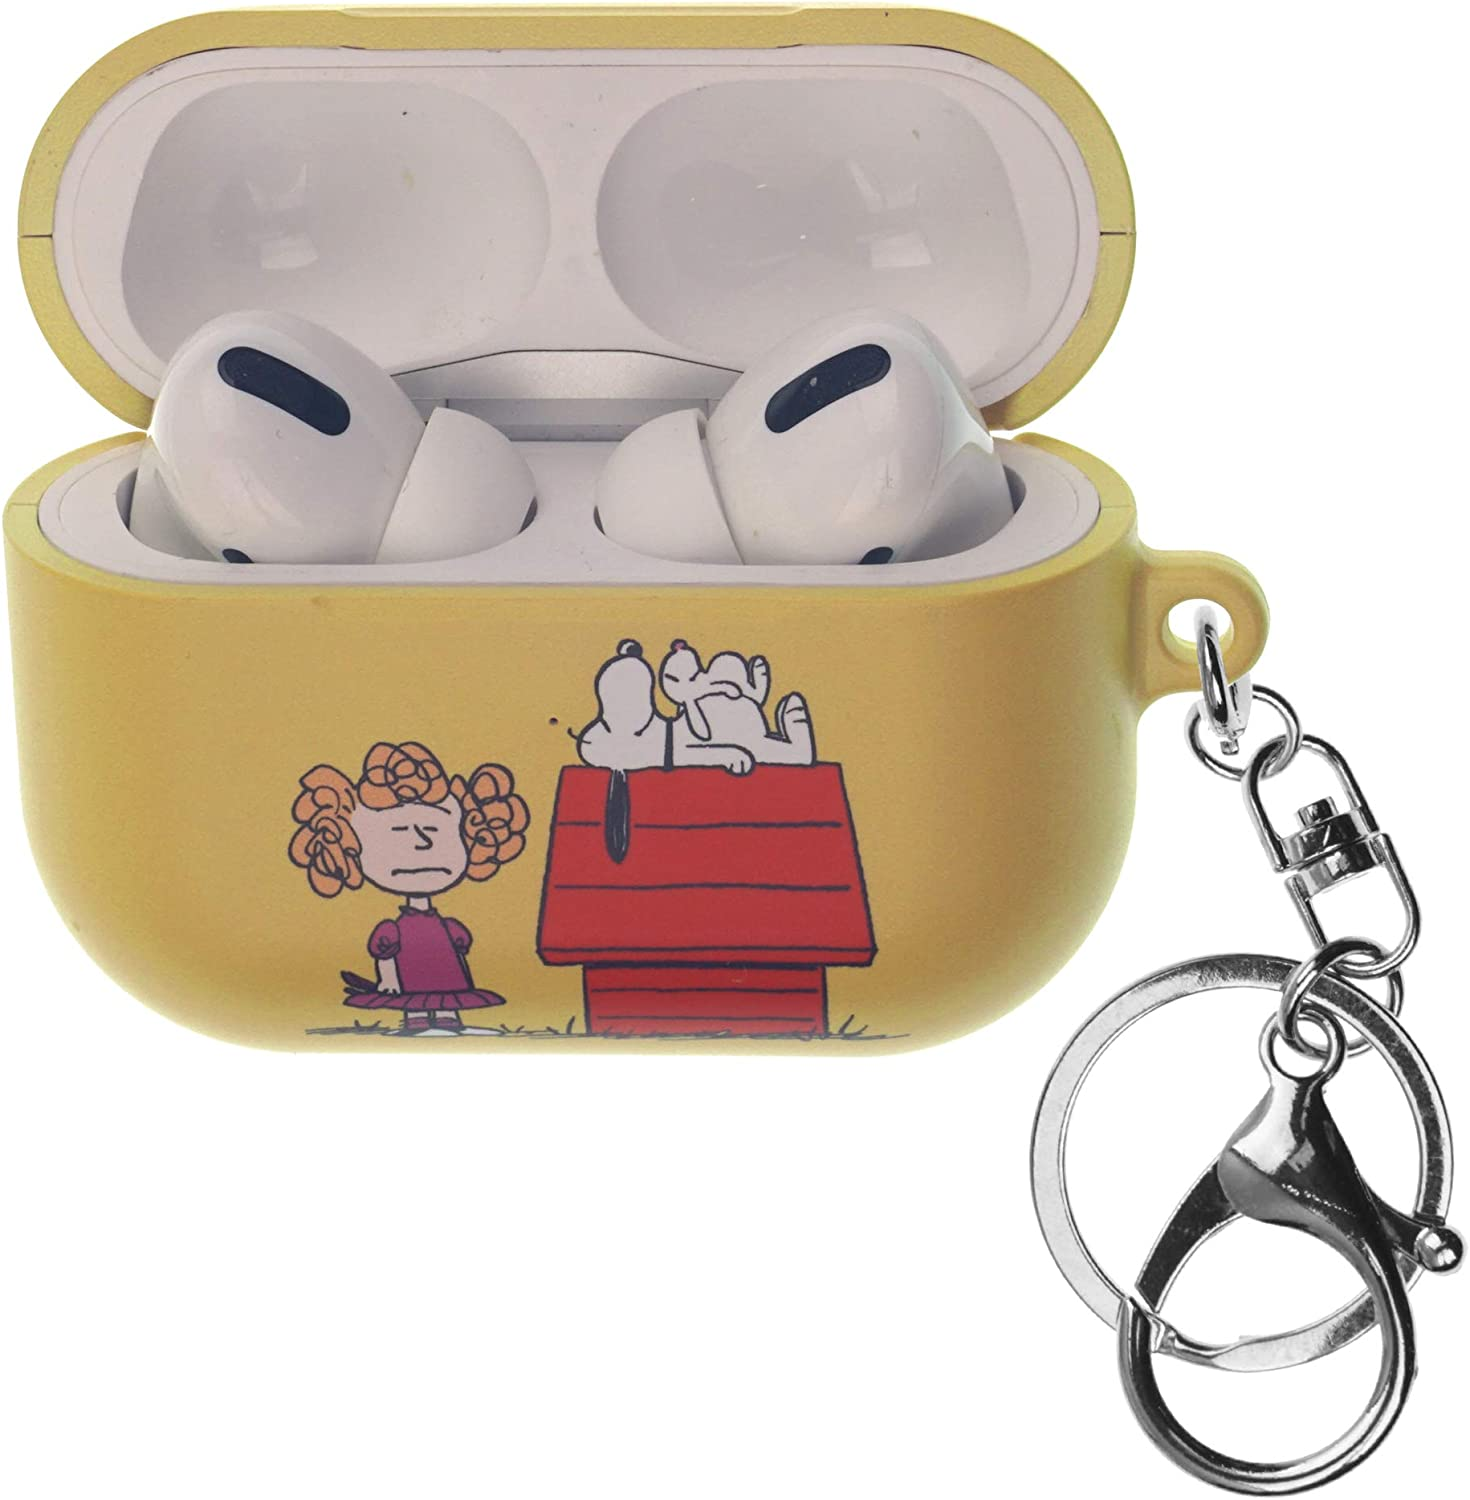 Front LED Visible Peanuts Snoopy AirPods Pro Case with Key Ring Keychain Key Holder Hard PC Shell Strap Hole Cover Happy Snoopy Joe Cool Accessories Compatible with Apple AirPods Pro